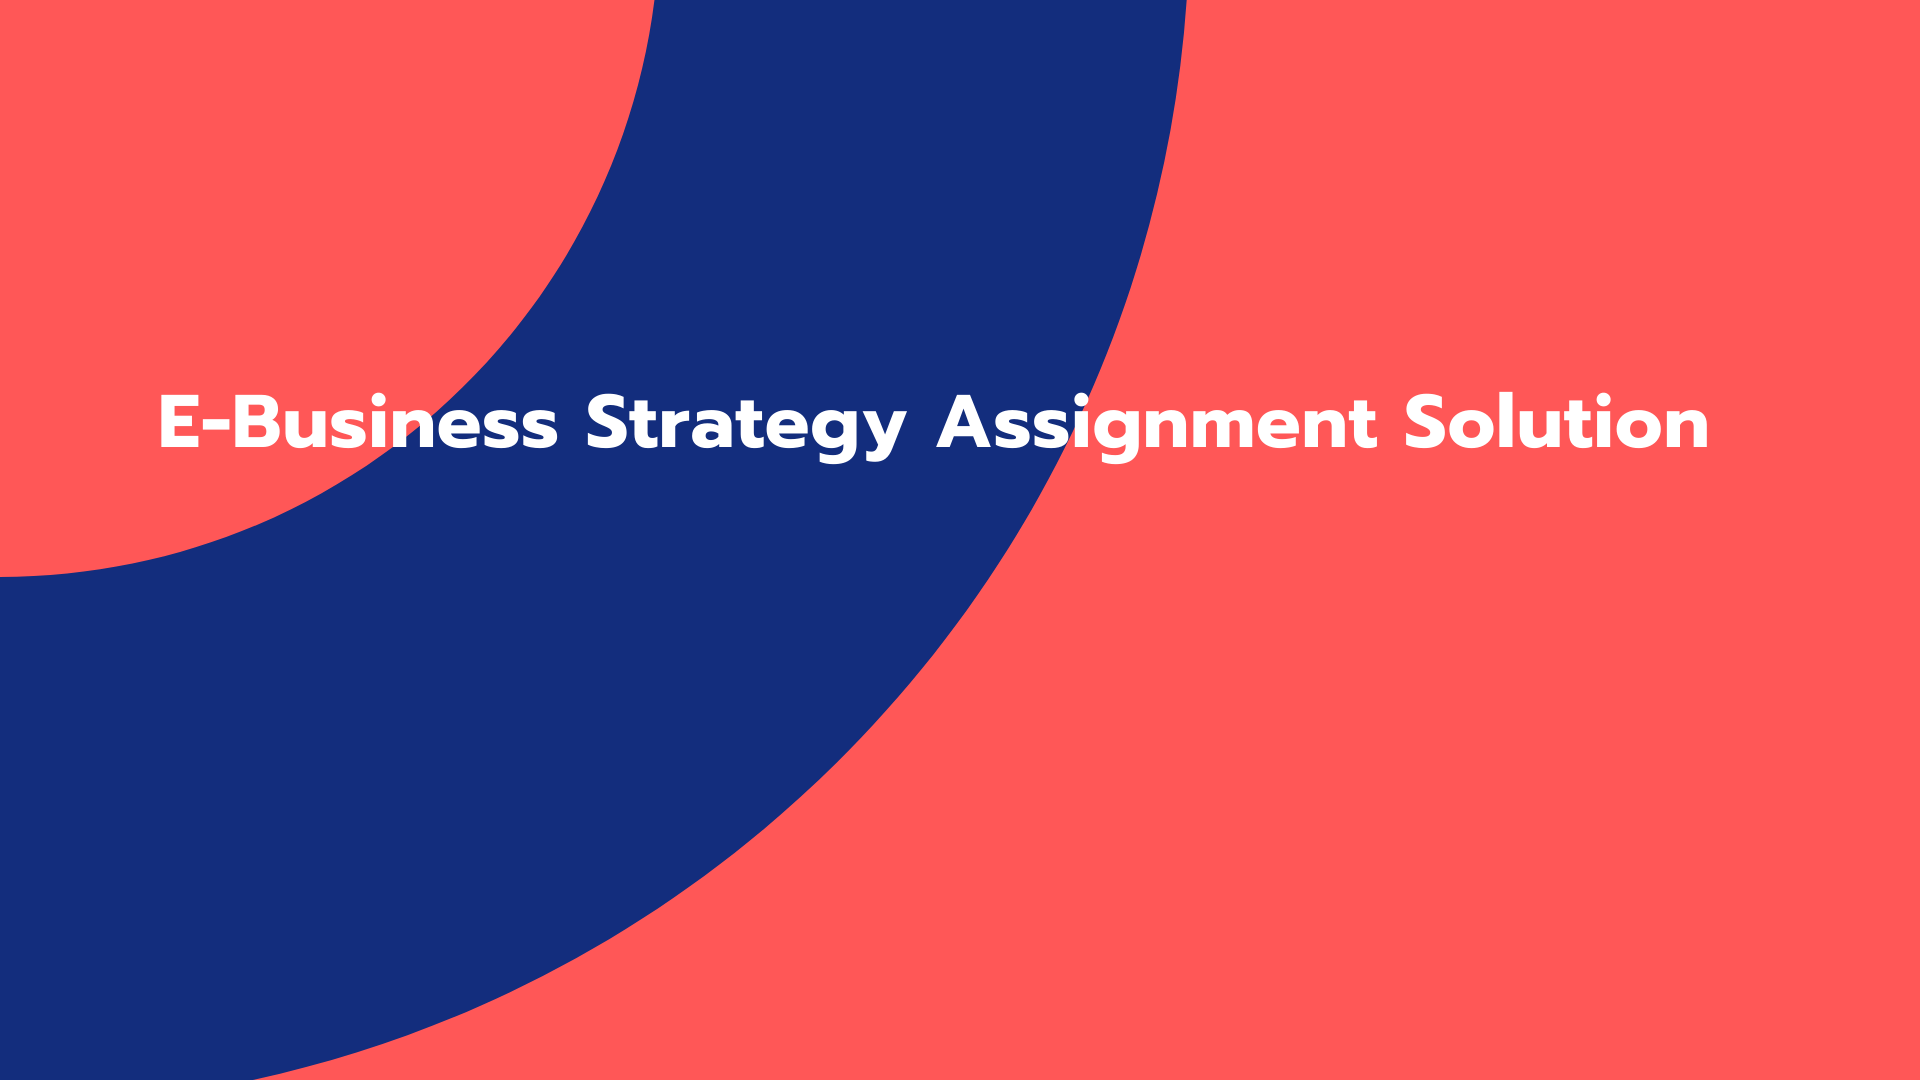 E-Business Strategy Assignment Solution